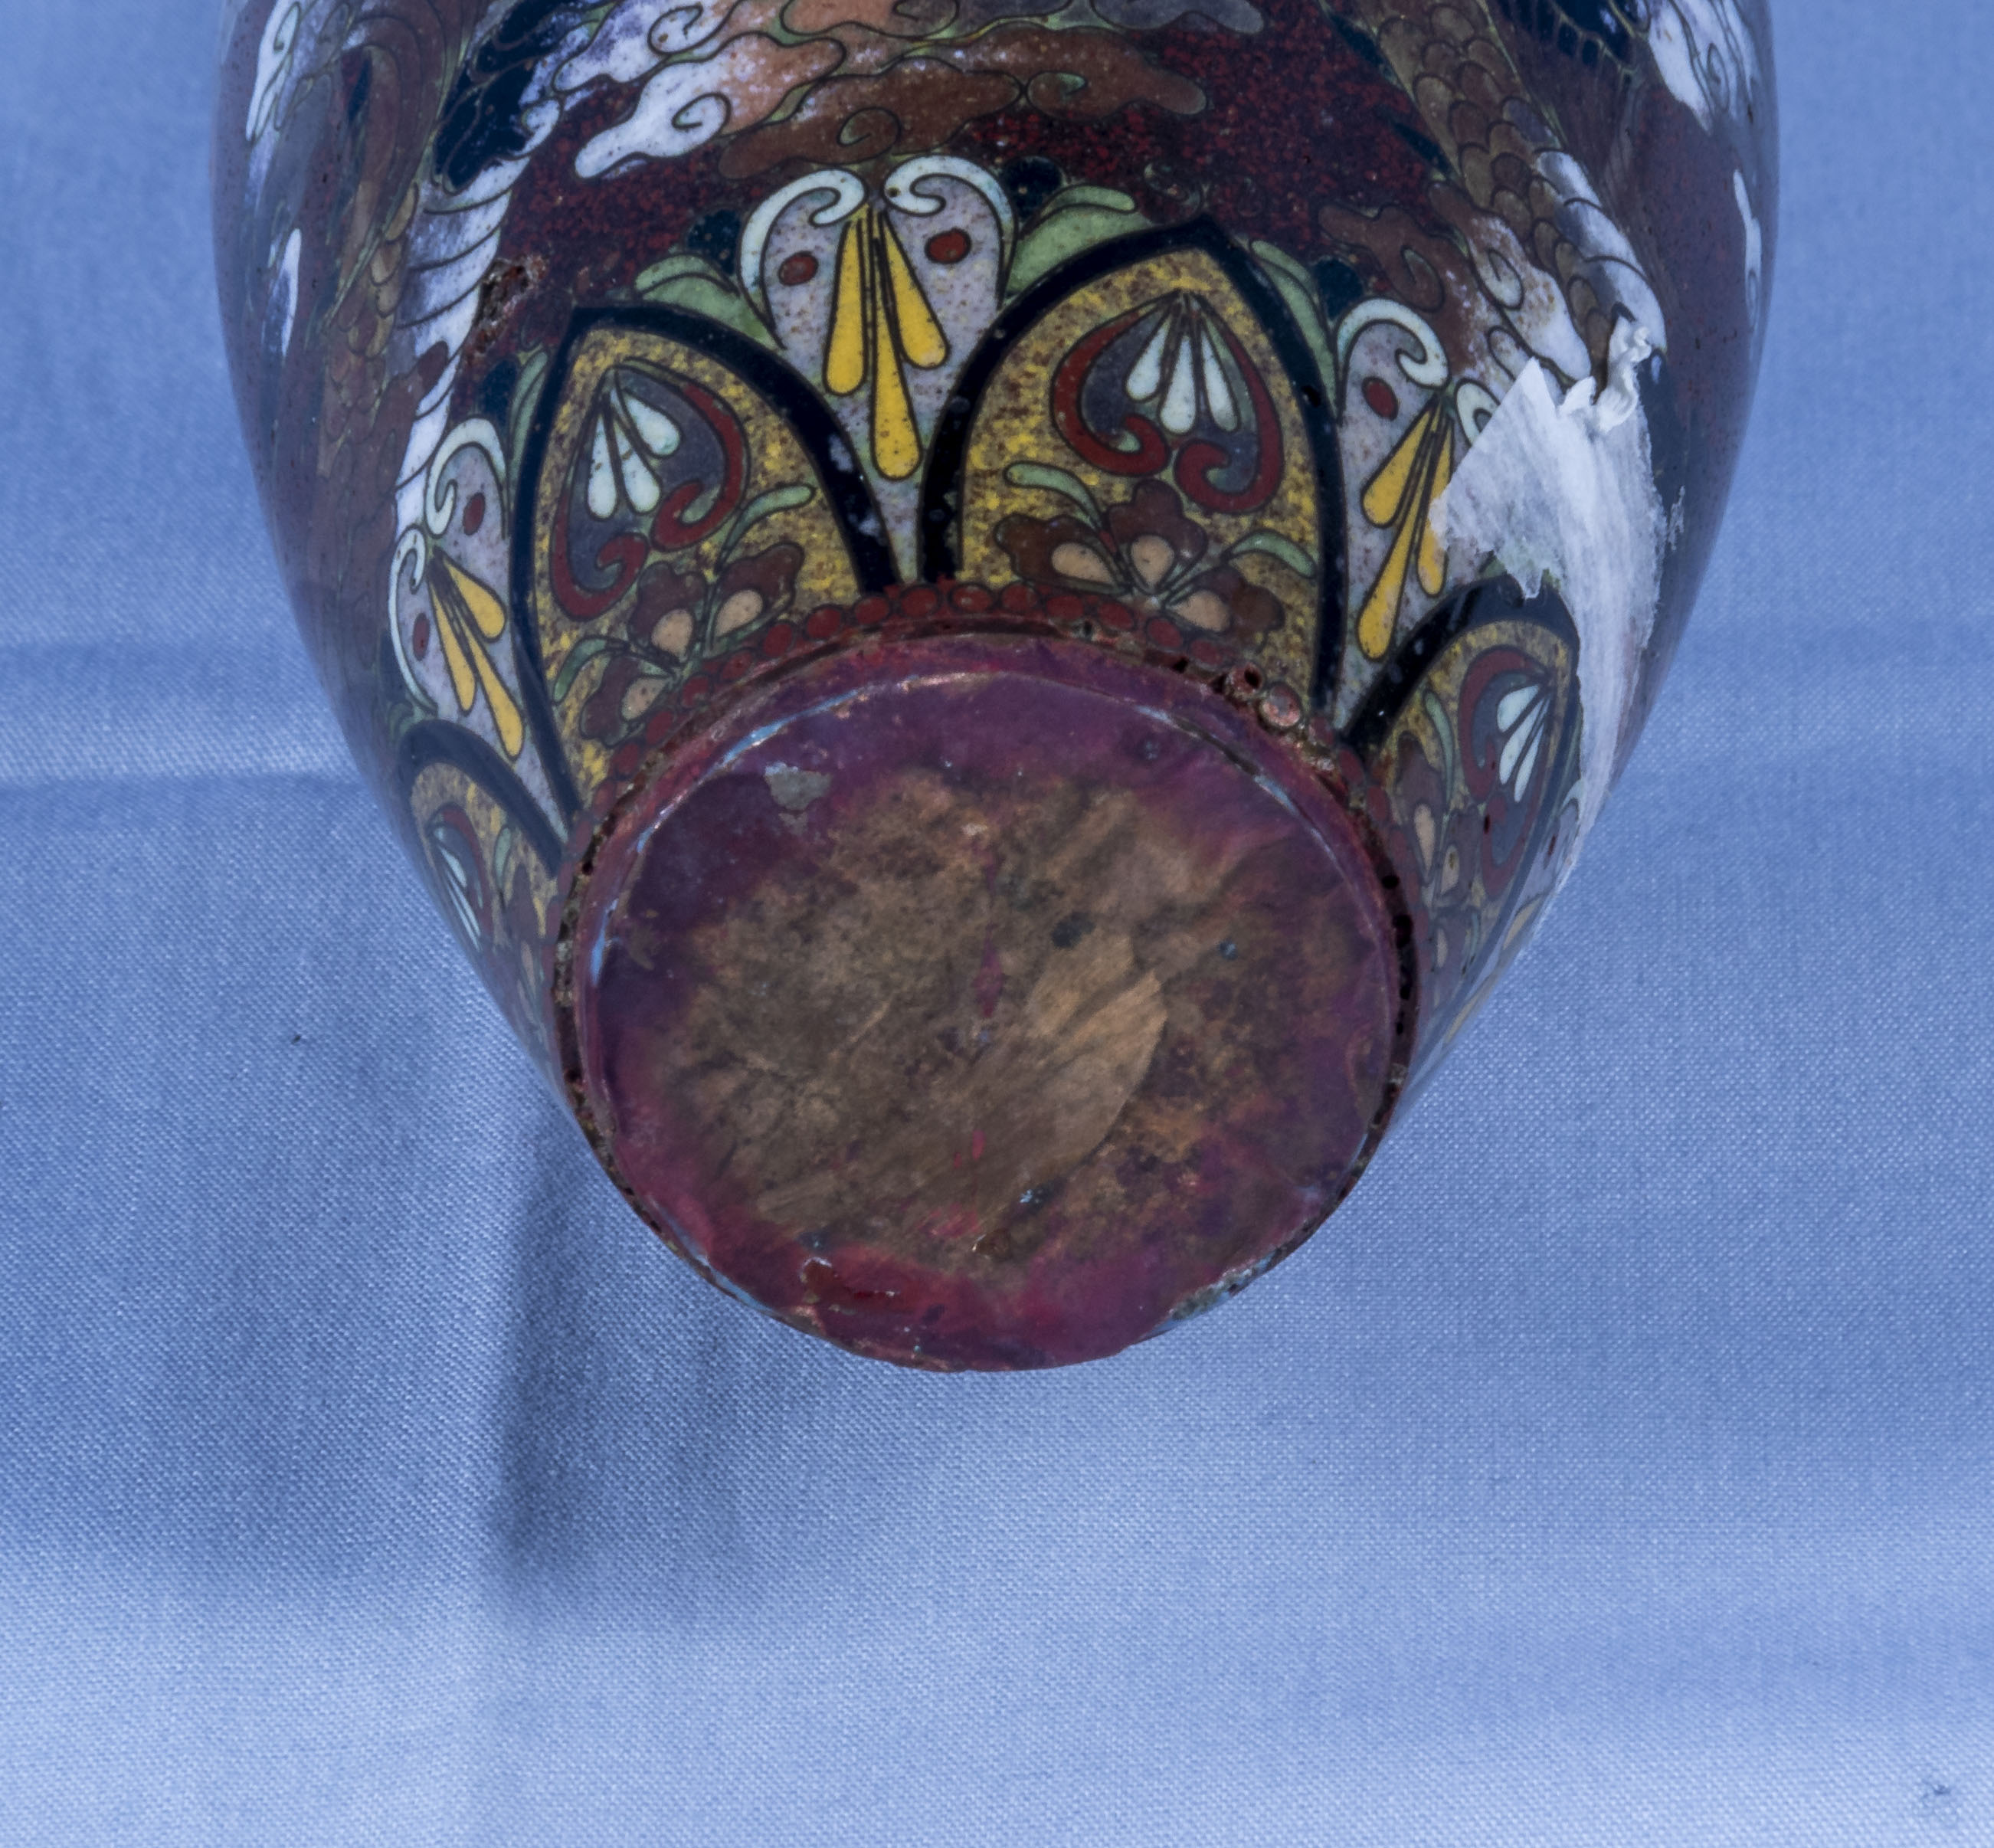 A fine quality Japanese miniature cloisonne vase decorated with dragons - Image 6 of 6